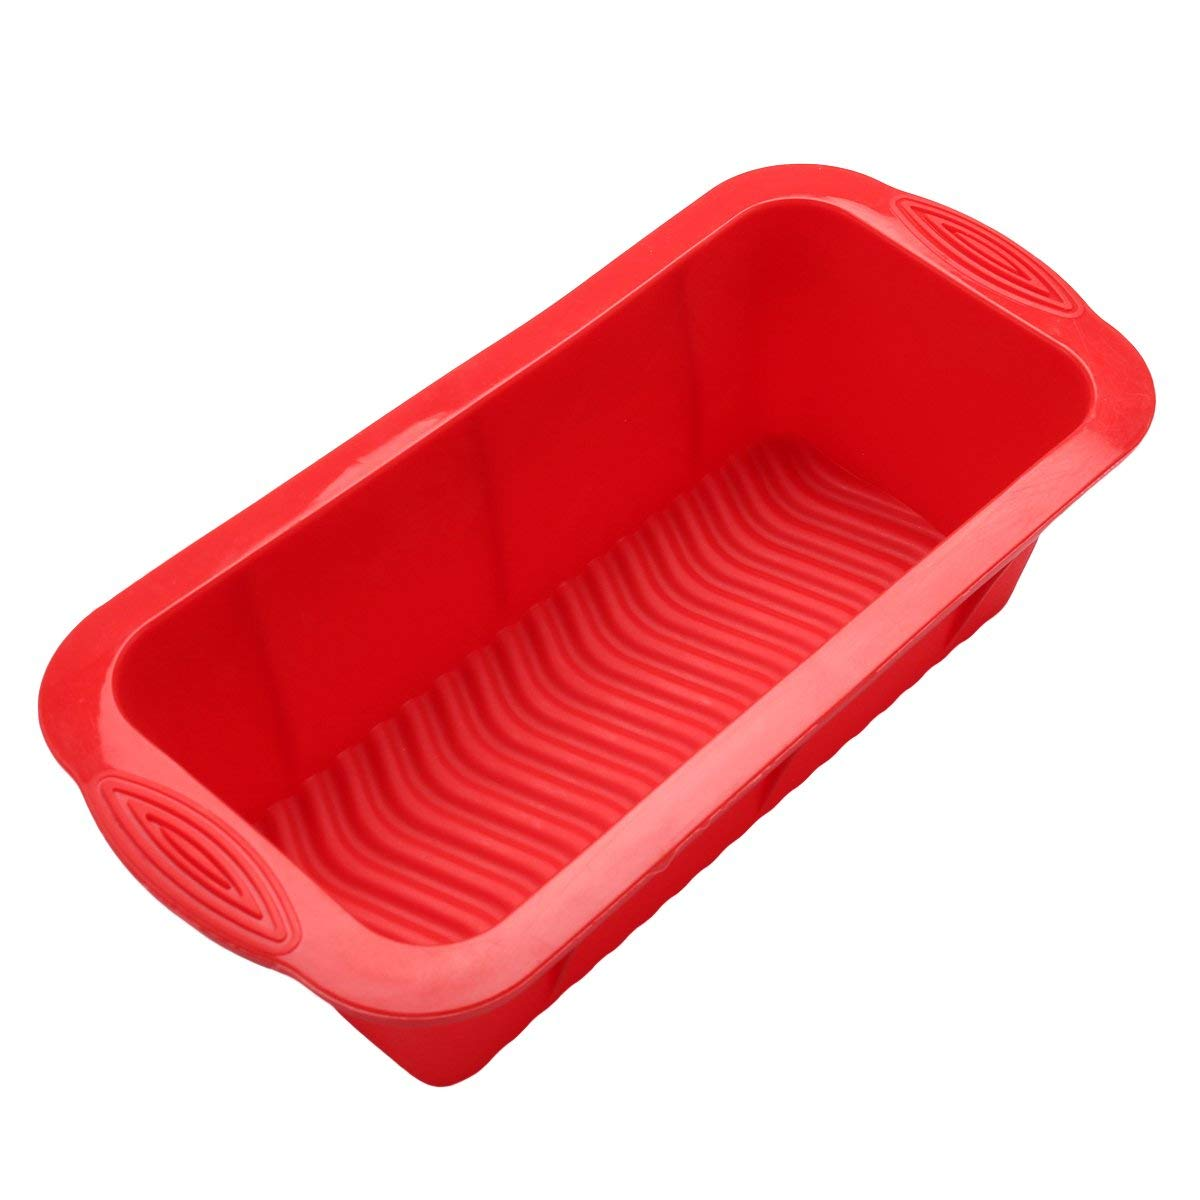 BESTOMZ Silicone Bread Loaf Mold Rectangular Food Grade, Non-stick Cake Pan with Handle Grips (Red)